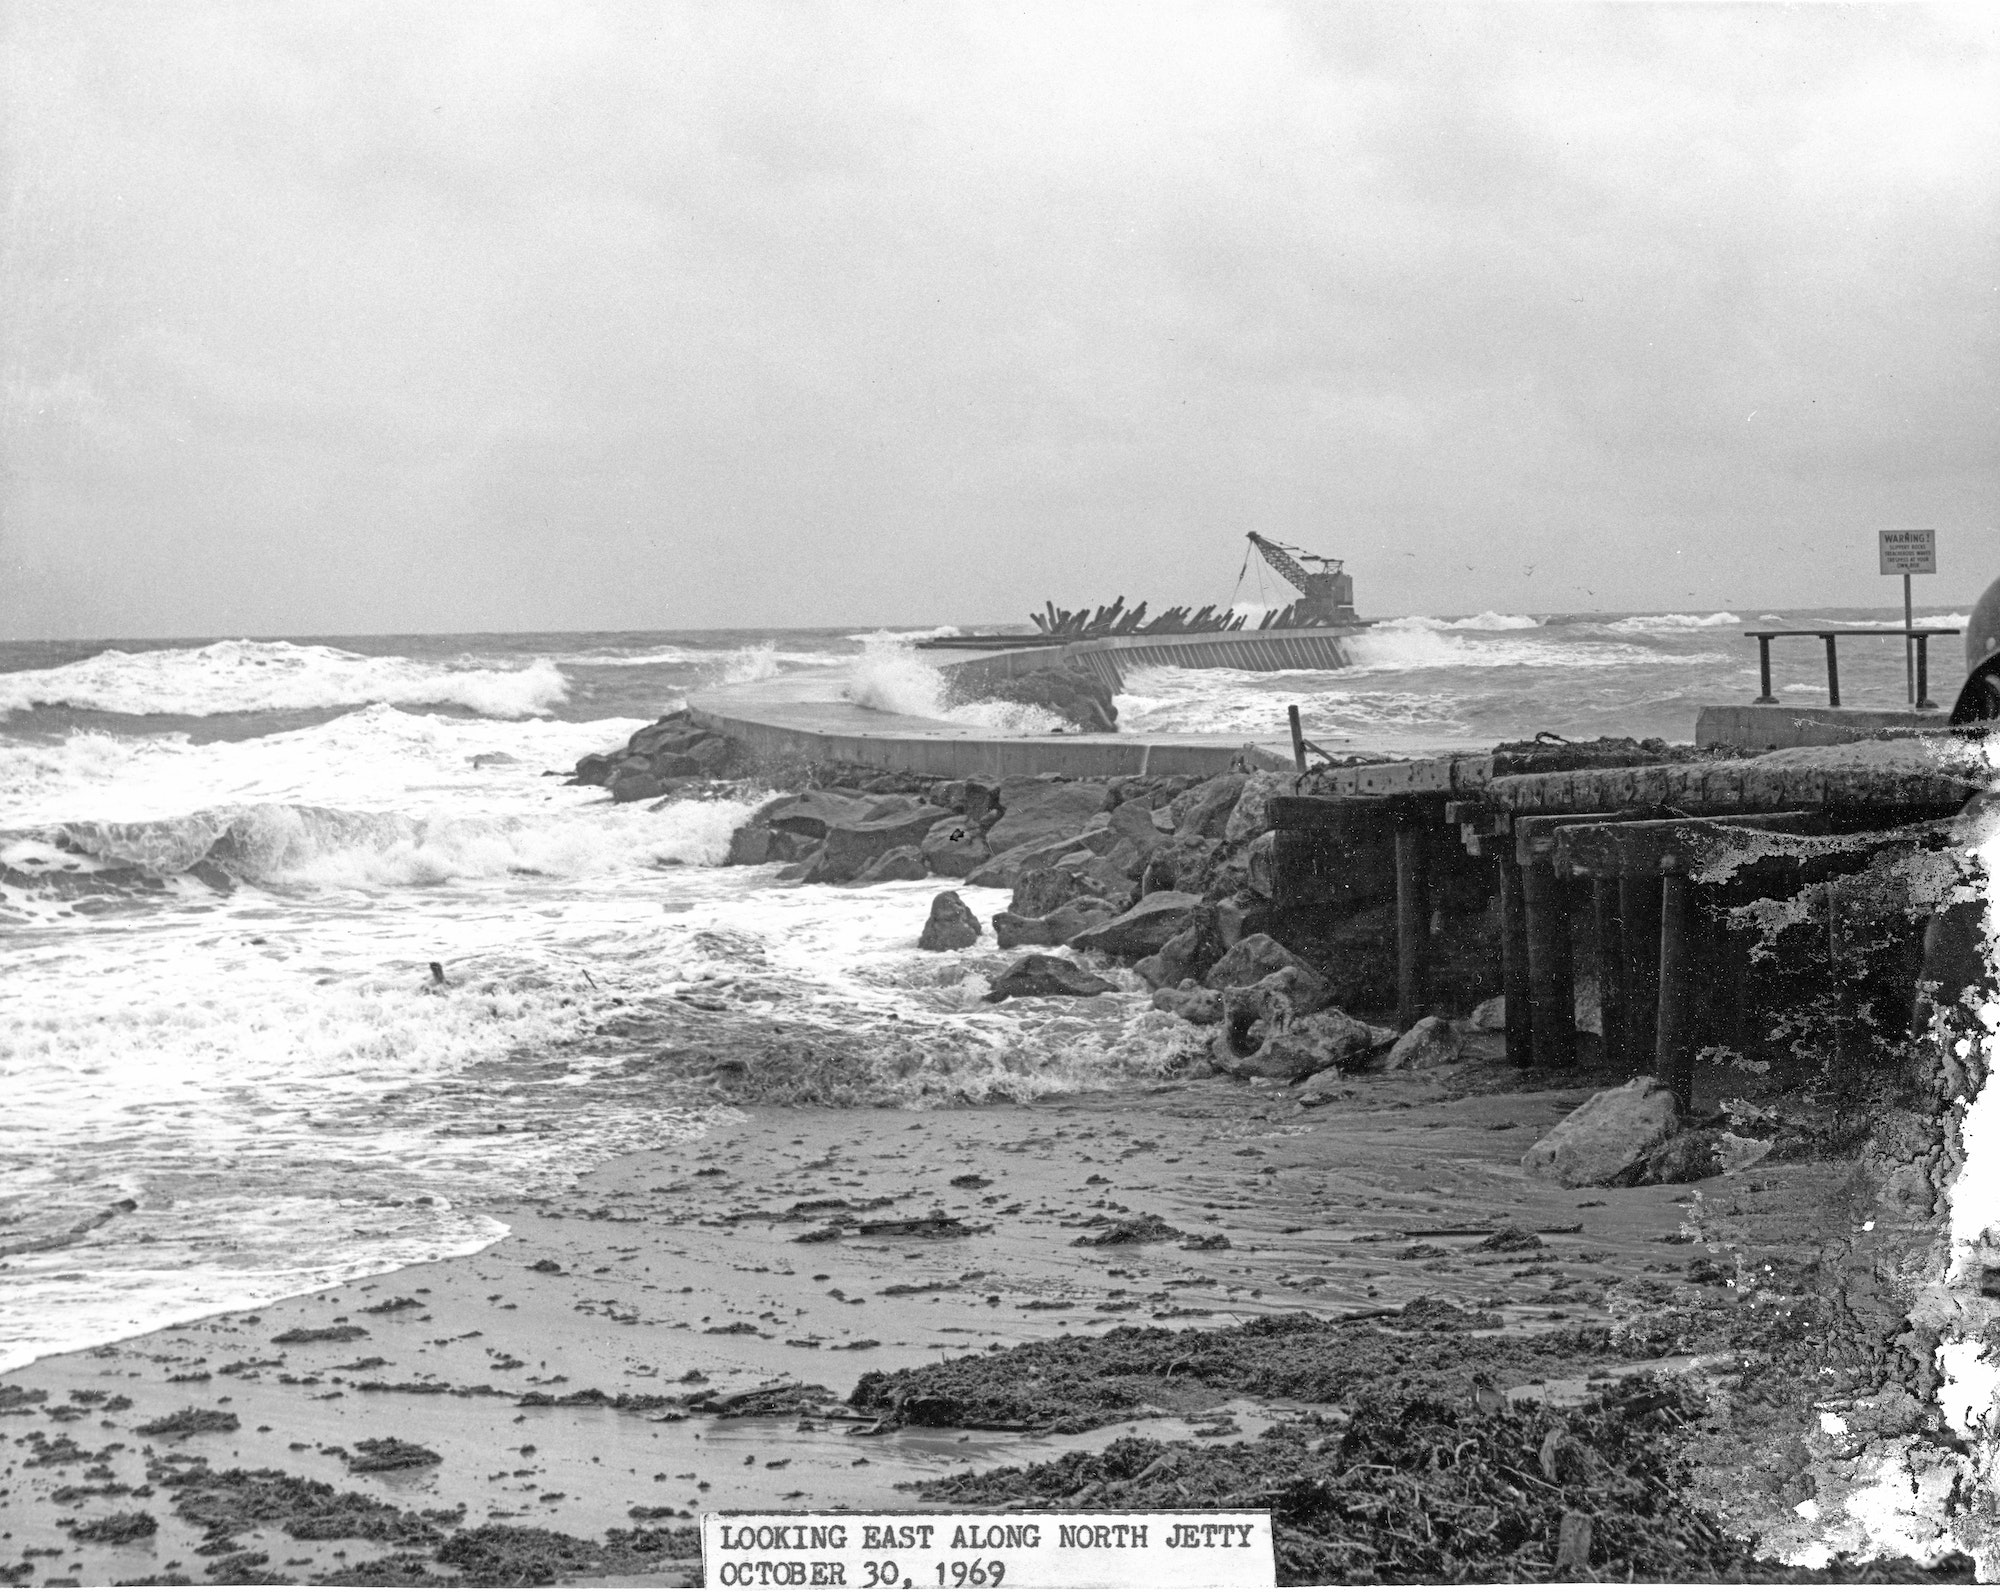 looking out from the base of north jetty with rough seas, damage to the jetty and crane stranded out on the tip